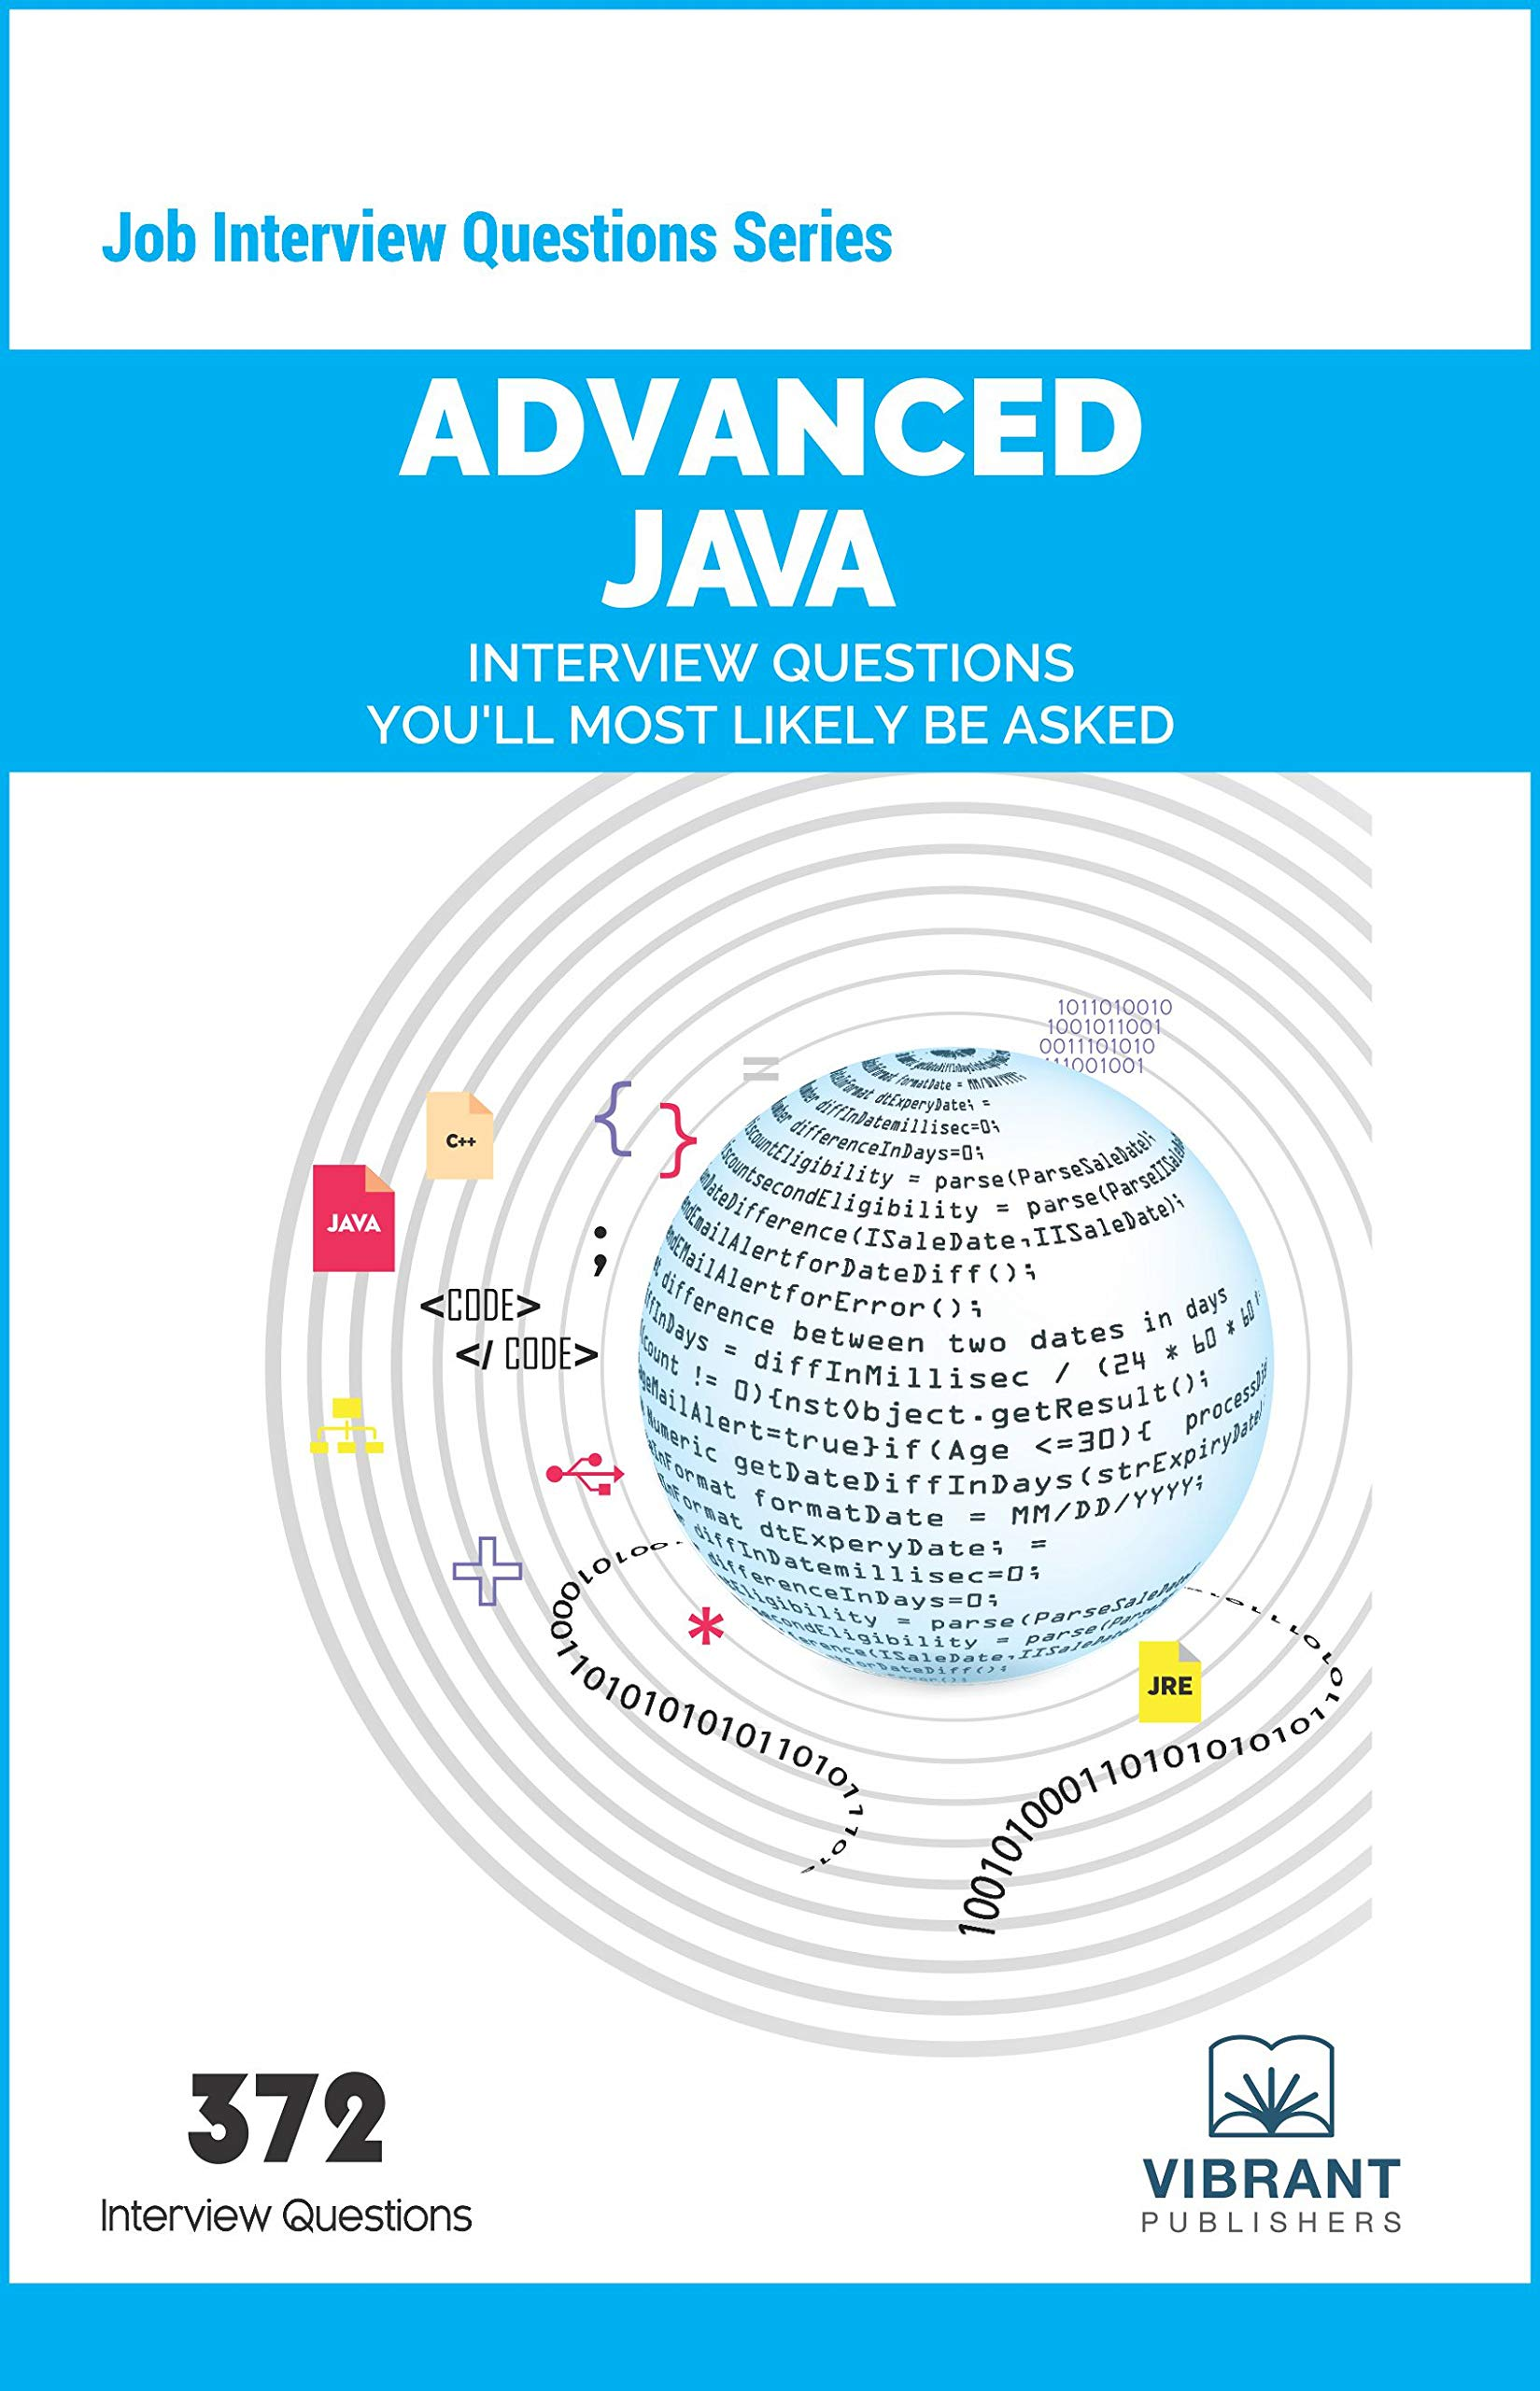 Advanced JAVA Interview Questions You'll Most Likely Be Asked: Volume 3 (Job Interview Questions) Vibrant Publishers